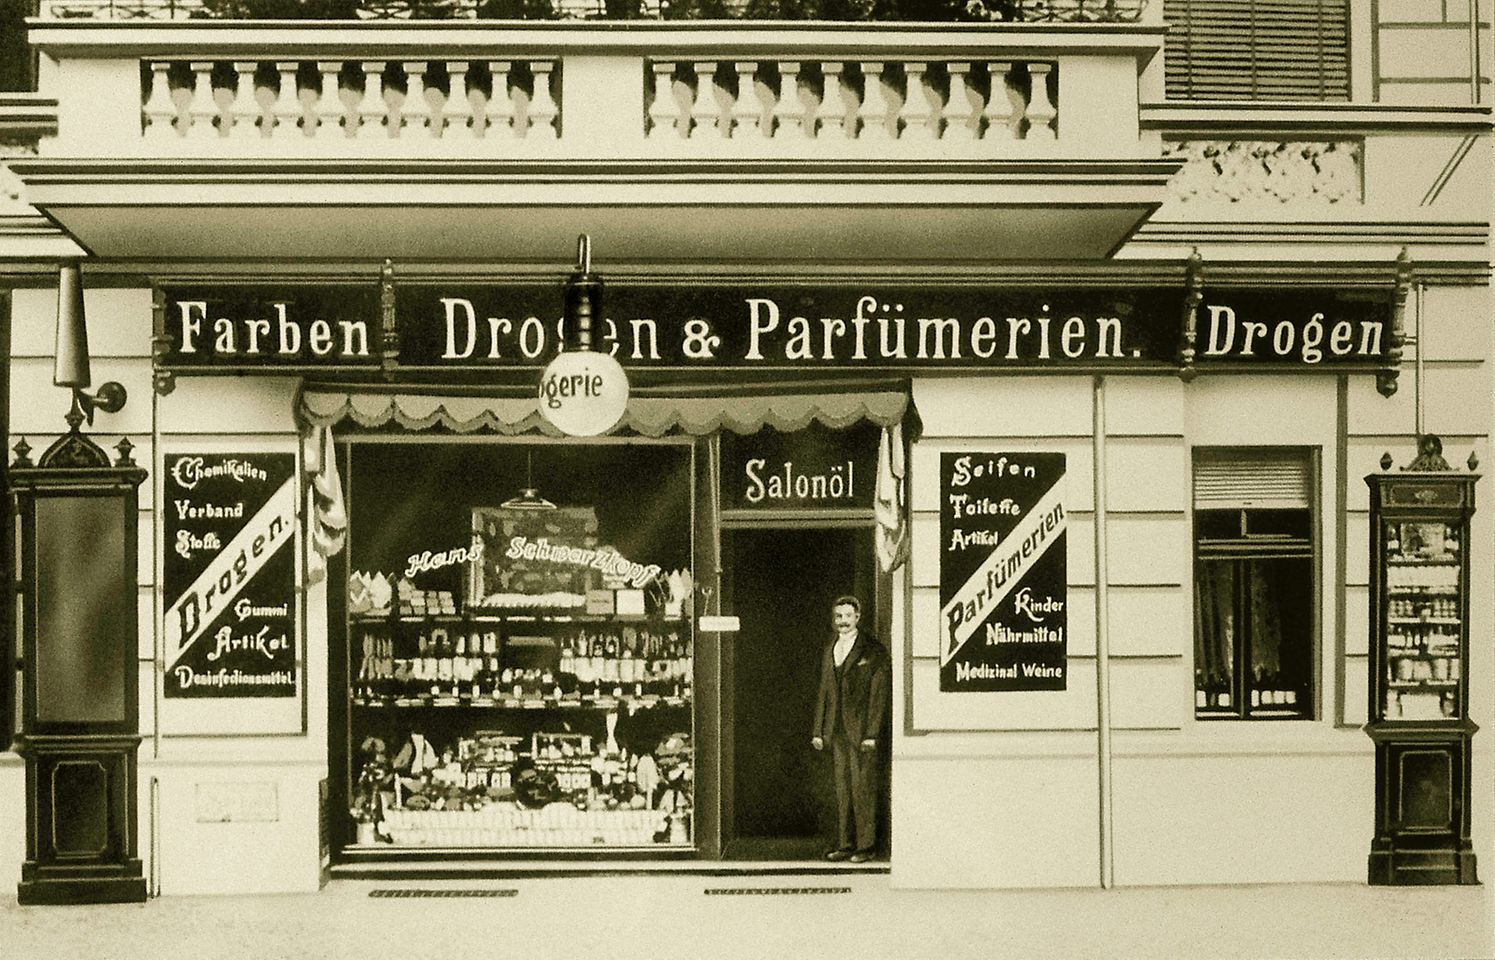 1898: Hans Schwarzkopf took over a drugstore in Berlin